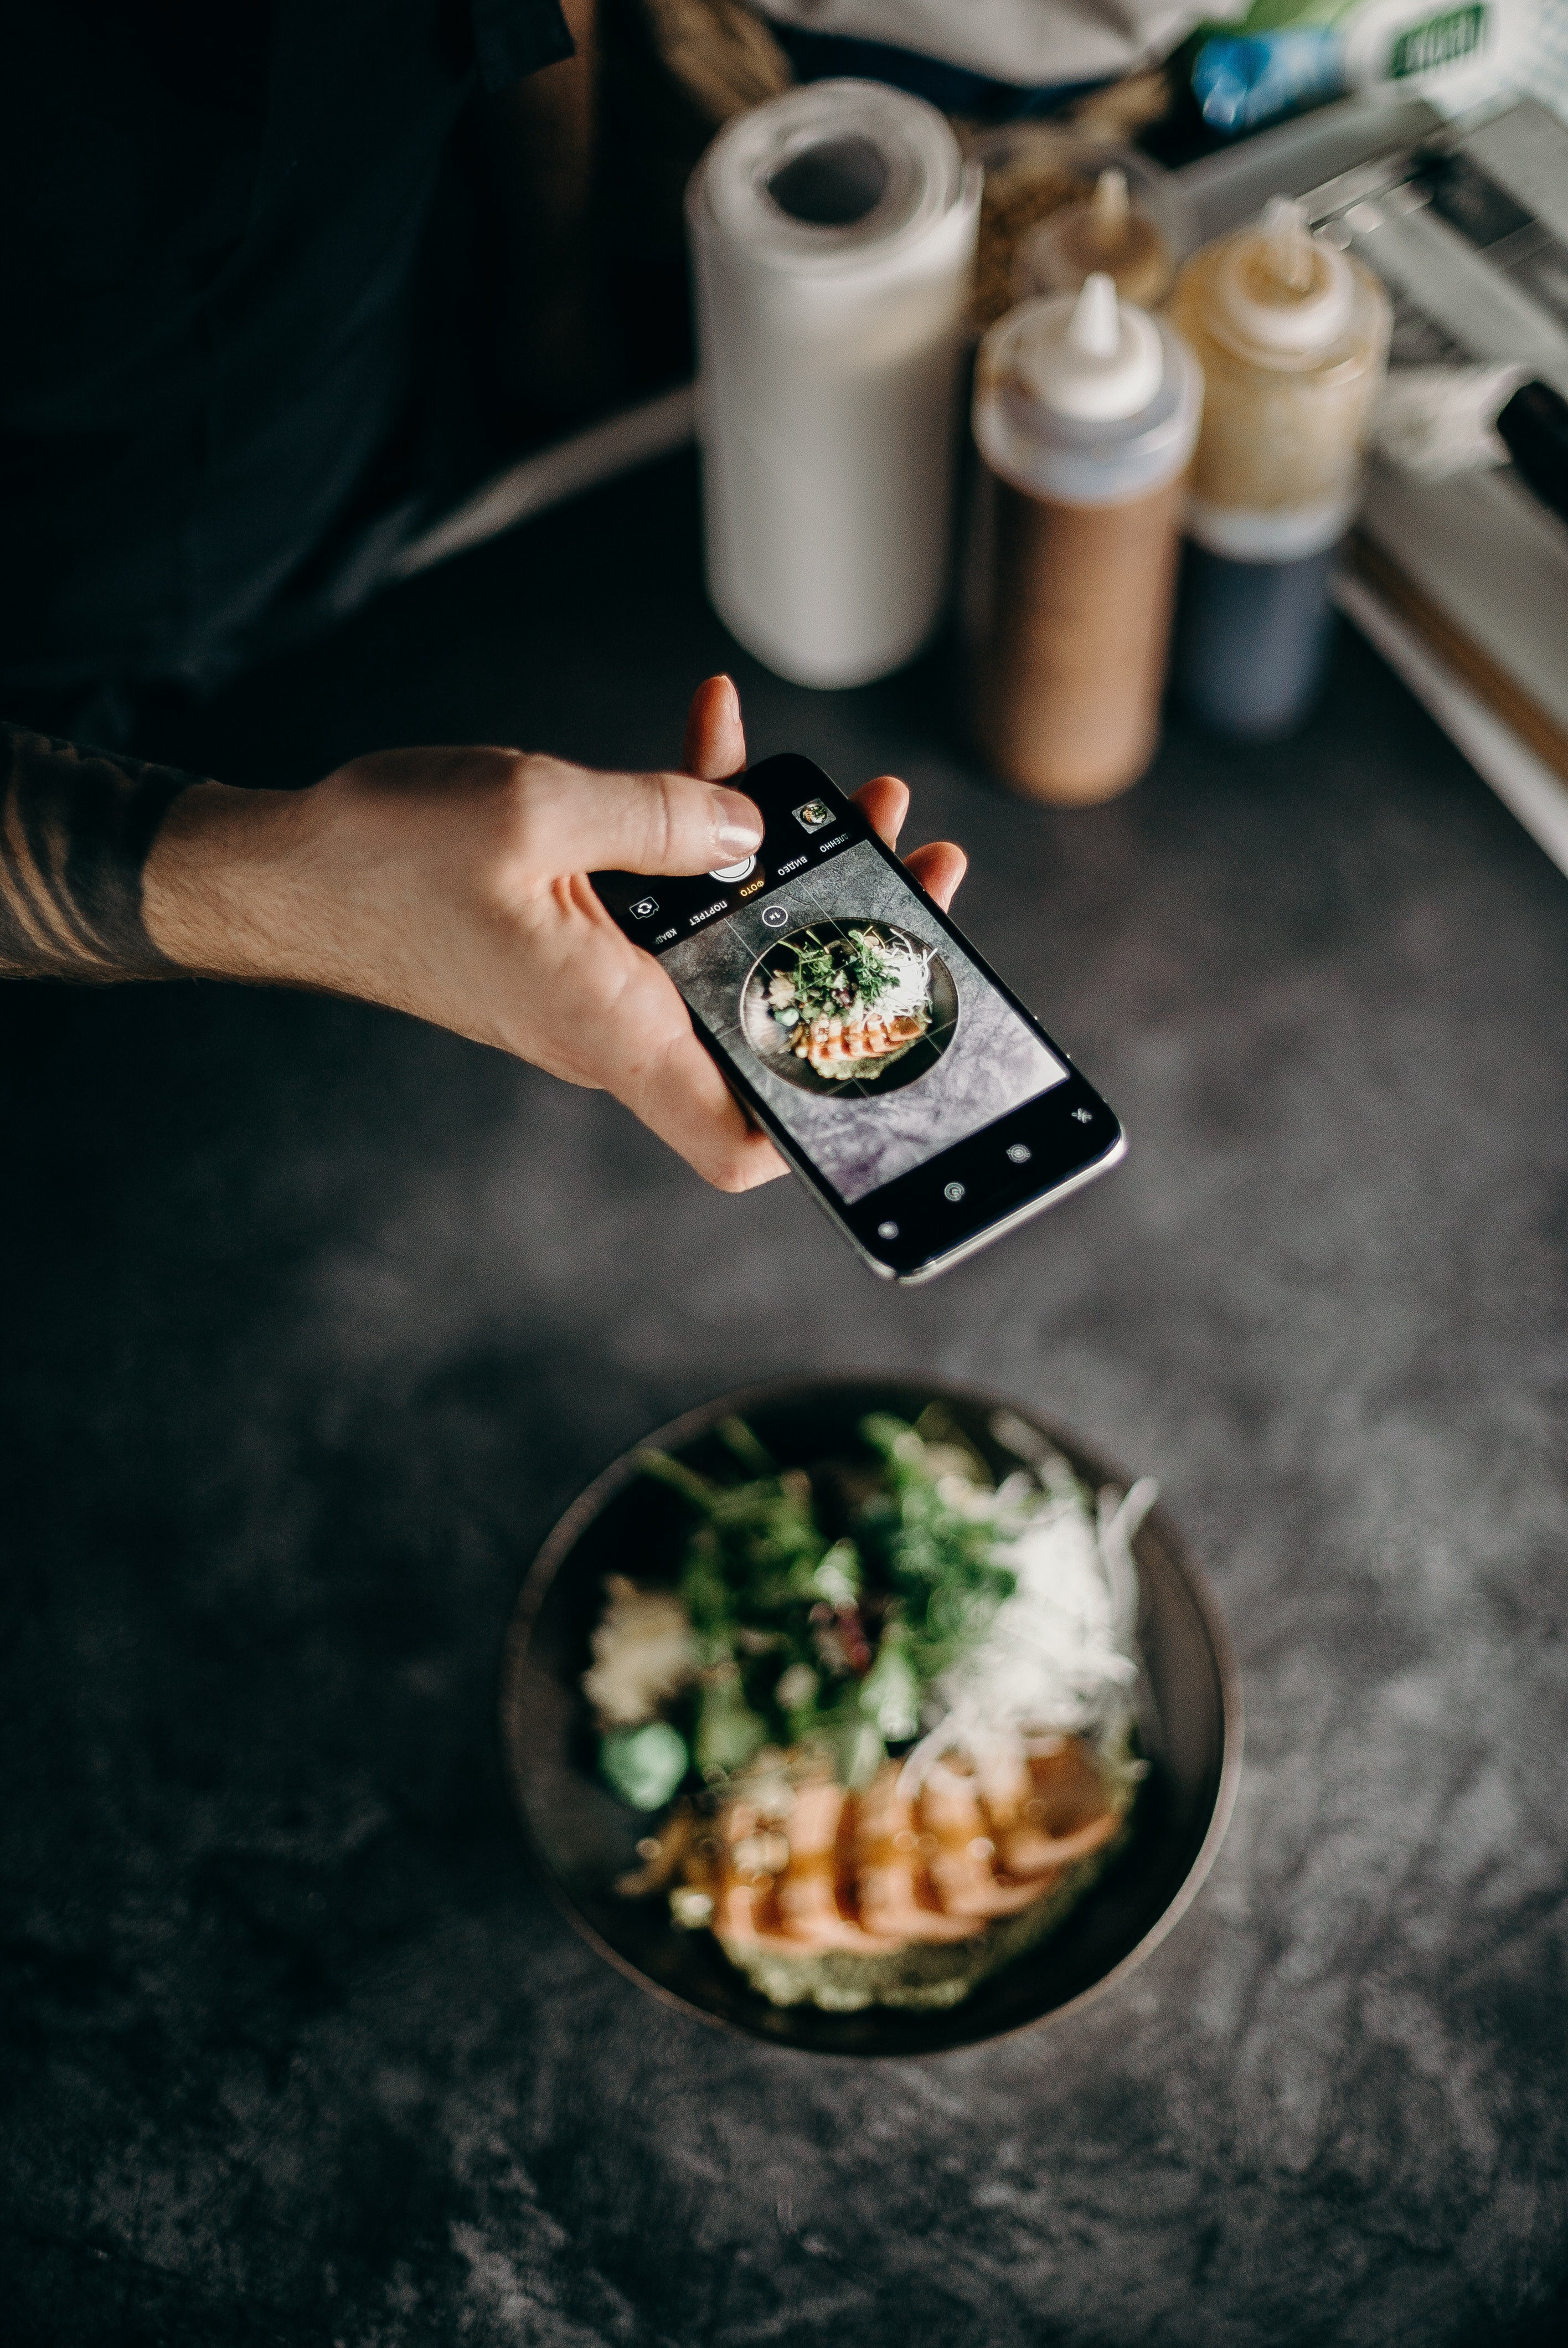 Man taking a photo of his food with his phone